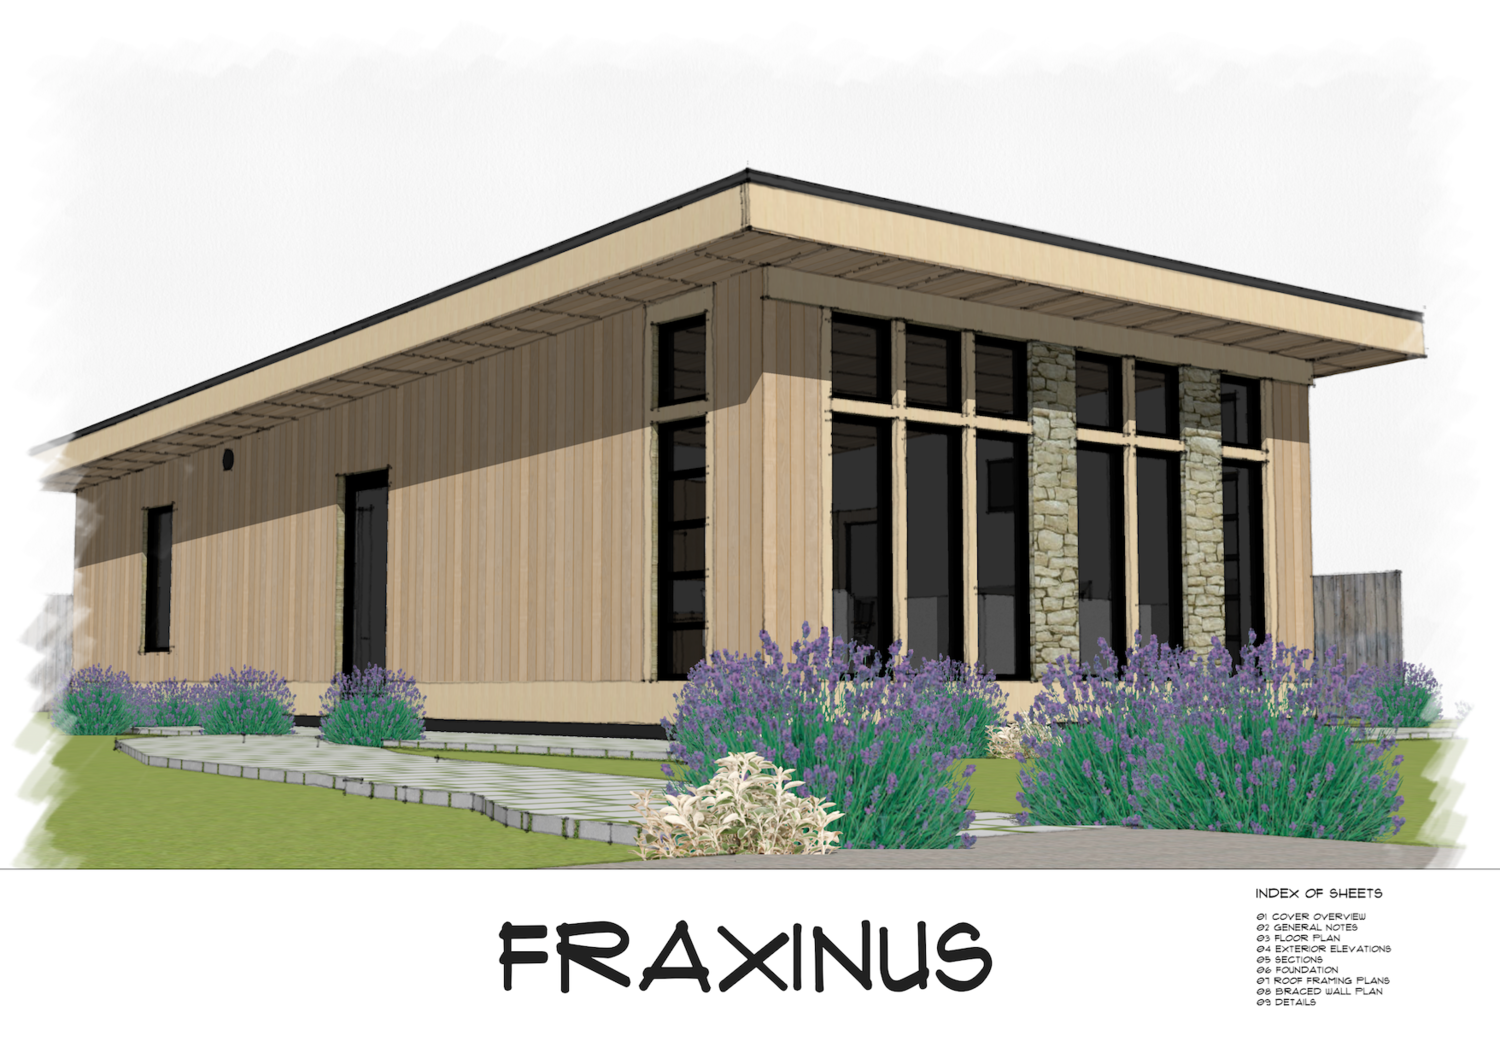 Fraxinus is a shed roof style modern small house plan featuring